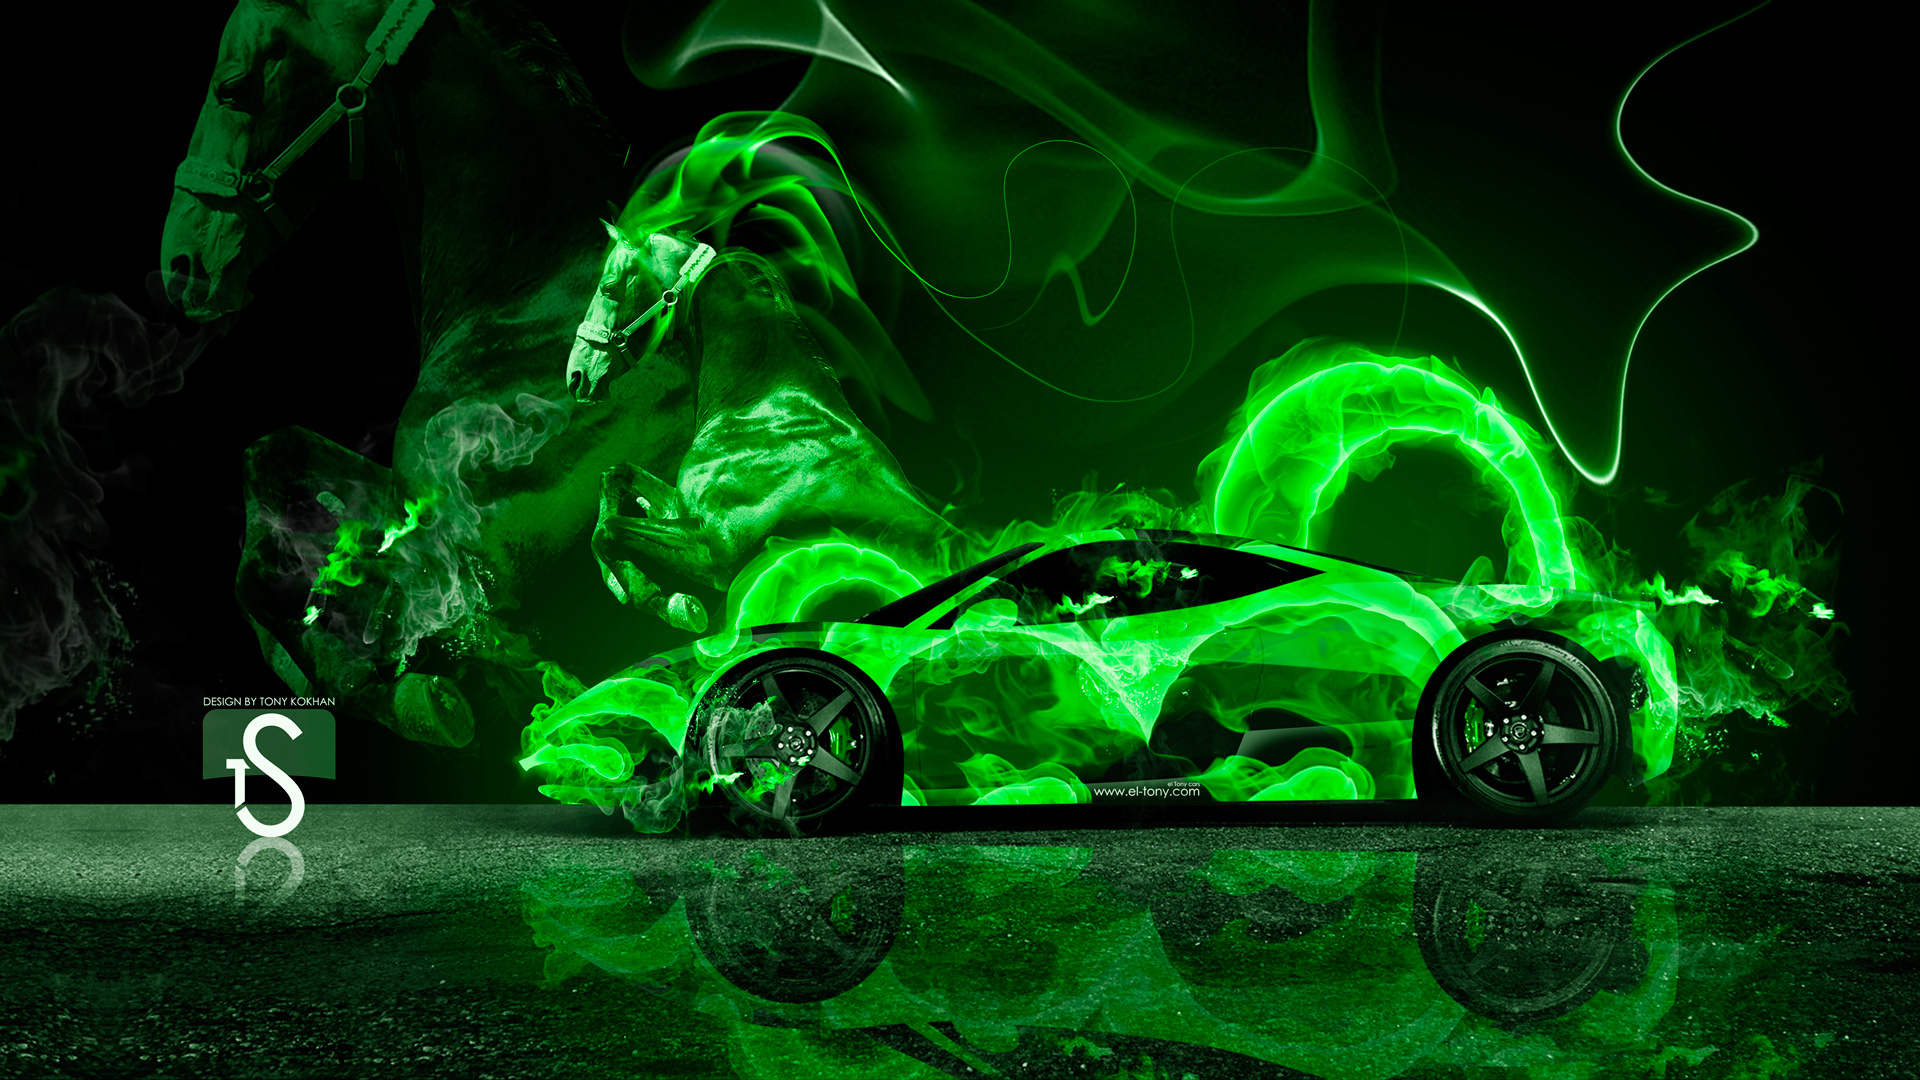 Green Fire Wallpaper Background Green Flame Wal...